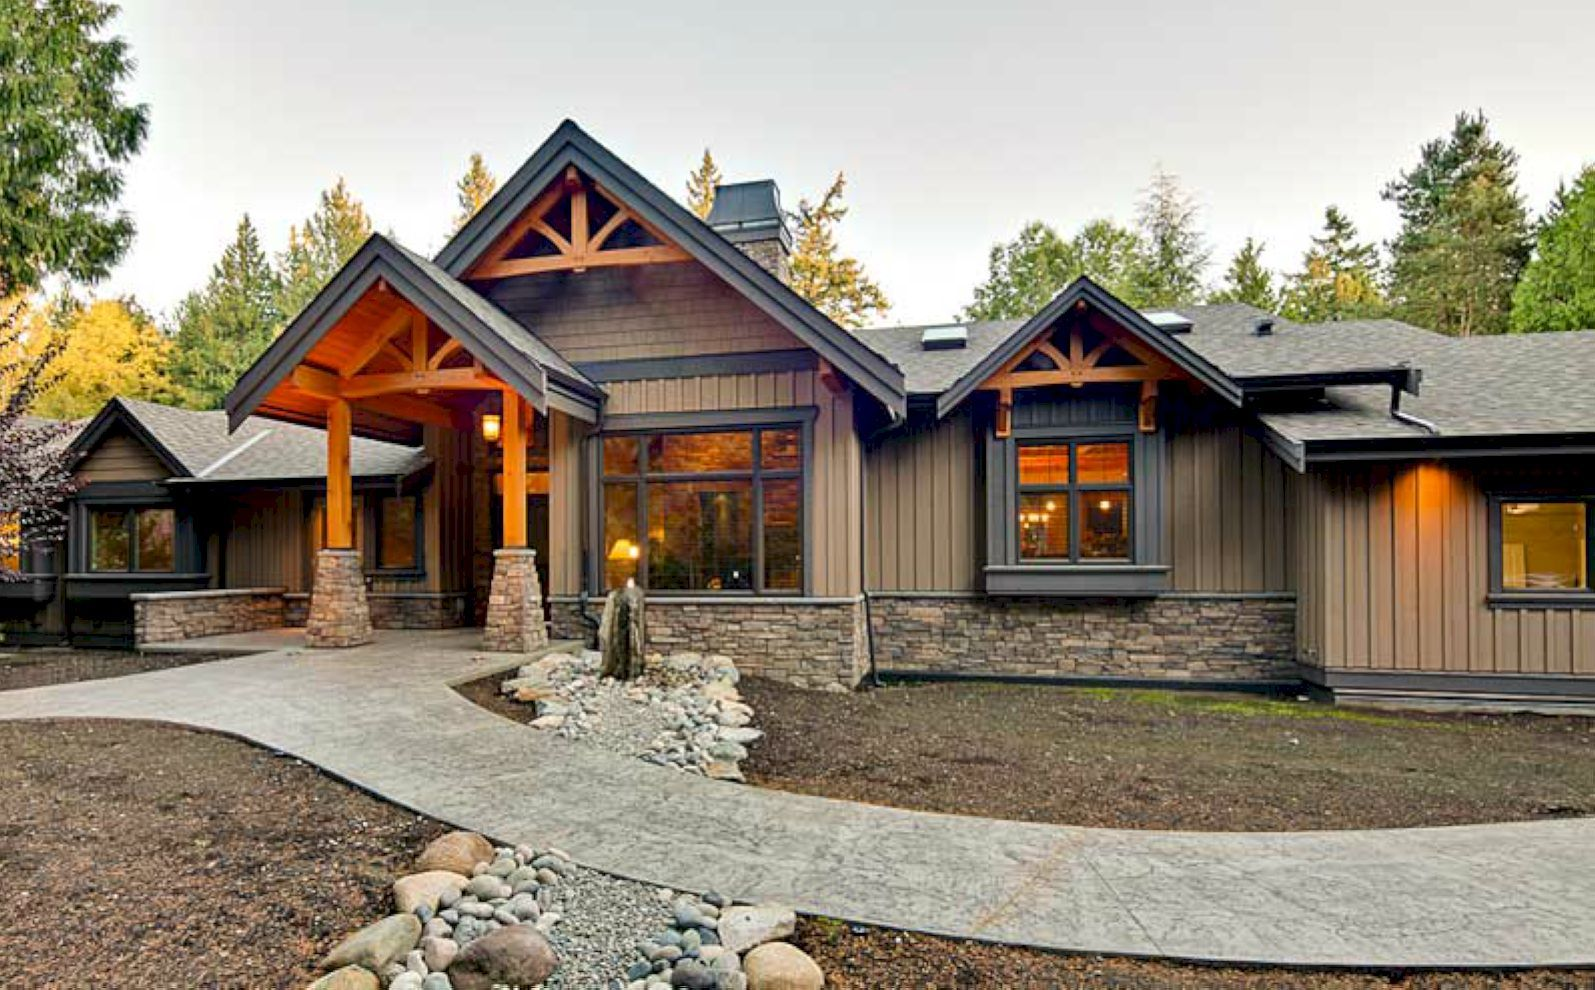 Most Charming Ranch House Plan Ideas for Inspiration | Tags ... on tree house designs, small ranch house designs, a frame house designs, ranch country house designs, carriage house designs, mid century modern ranch home designs, wolf house designs, bungalow designs, best ranch home designs, architecture modern house designs, contemporary ranch house designs, beautiful ranch house designs, victorian house designs, new ranch home designs, american ranch designs, ranch exterior house designs, farmhouse designs, craftsman house designs, morton house designs, simple ranch home designs,